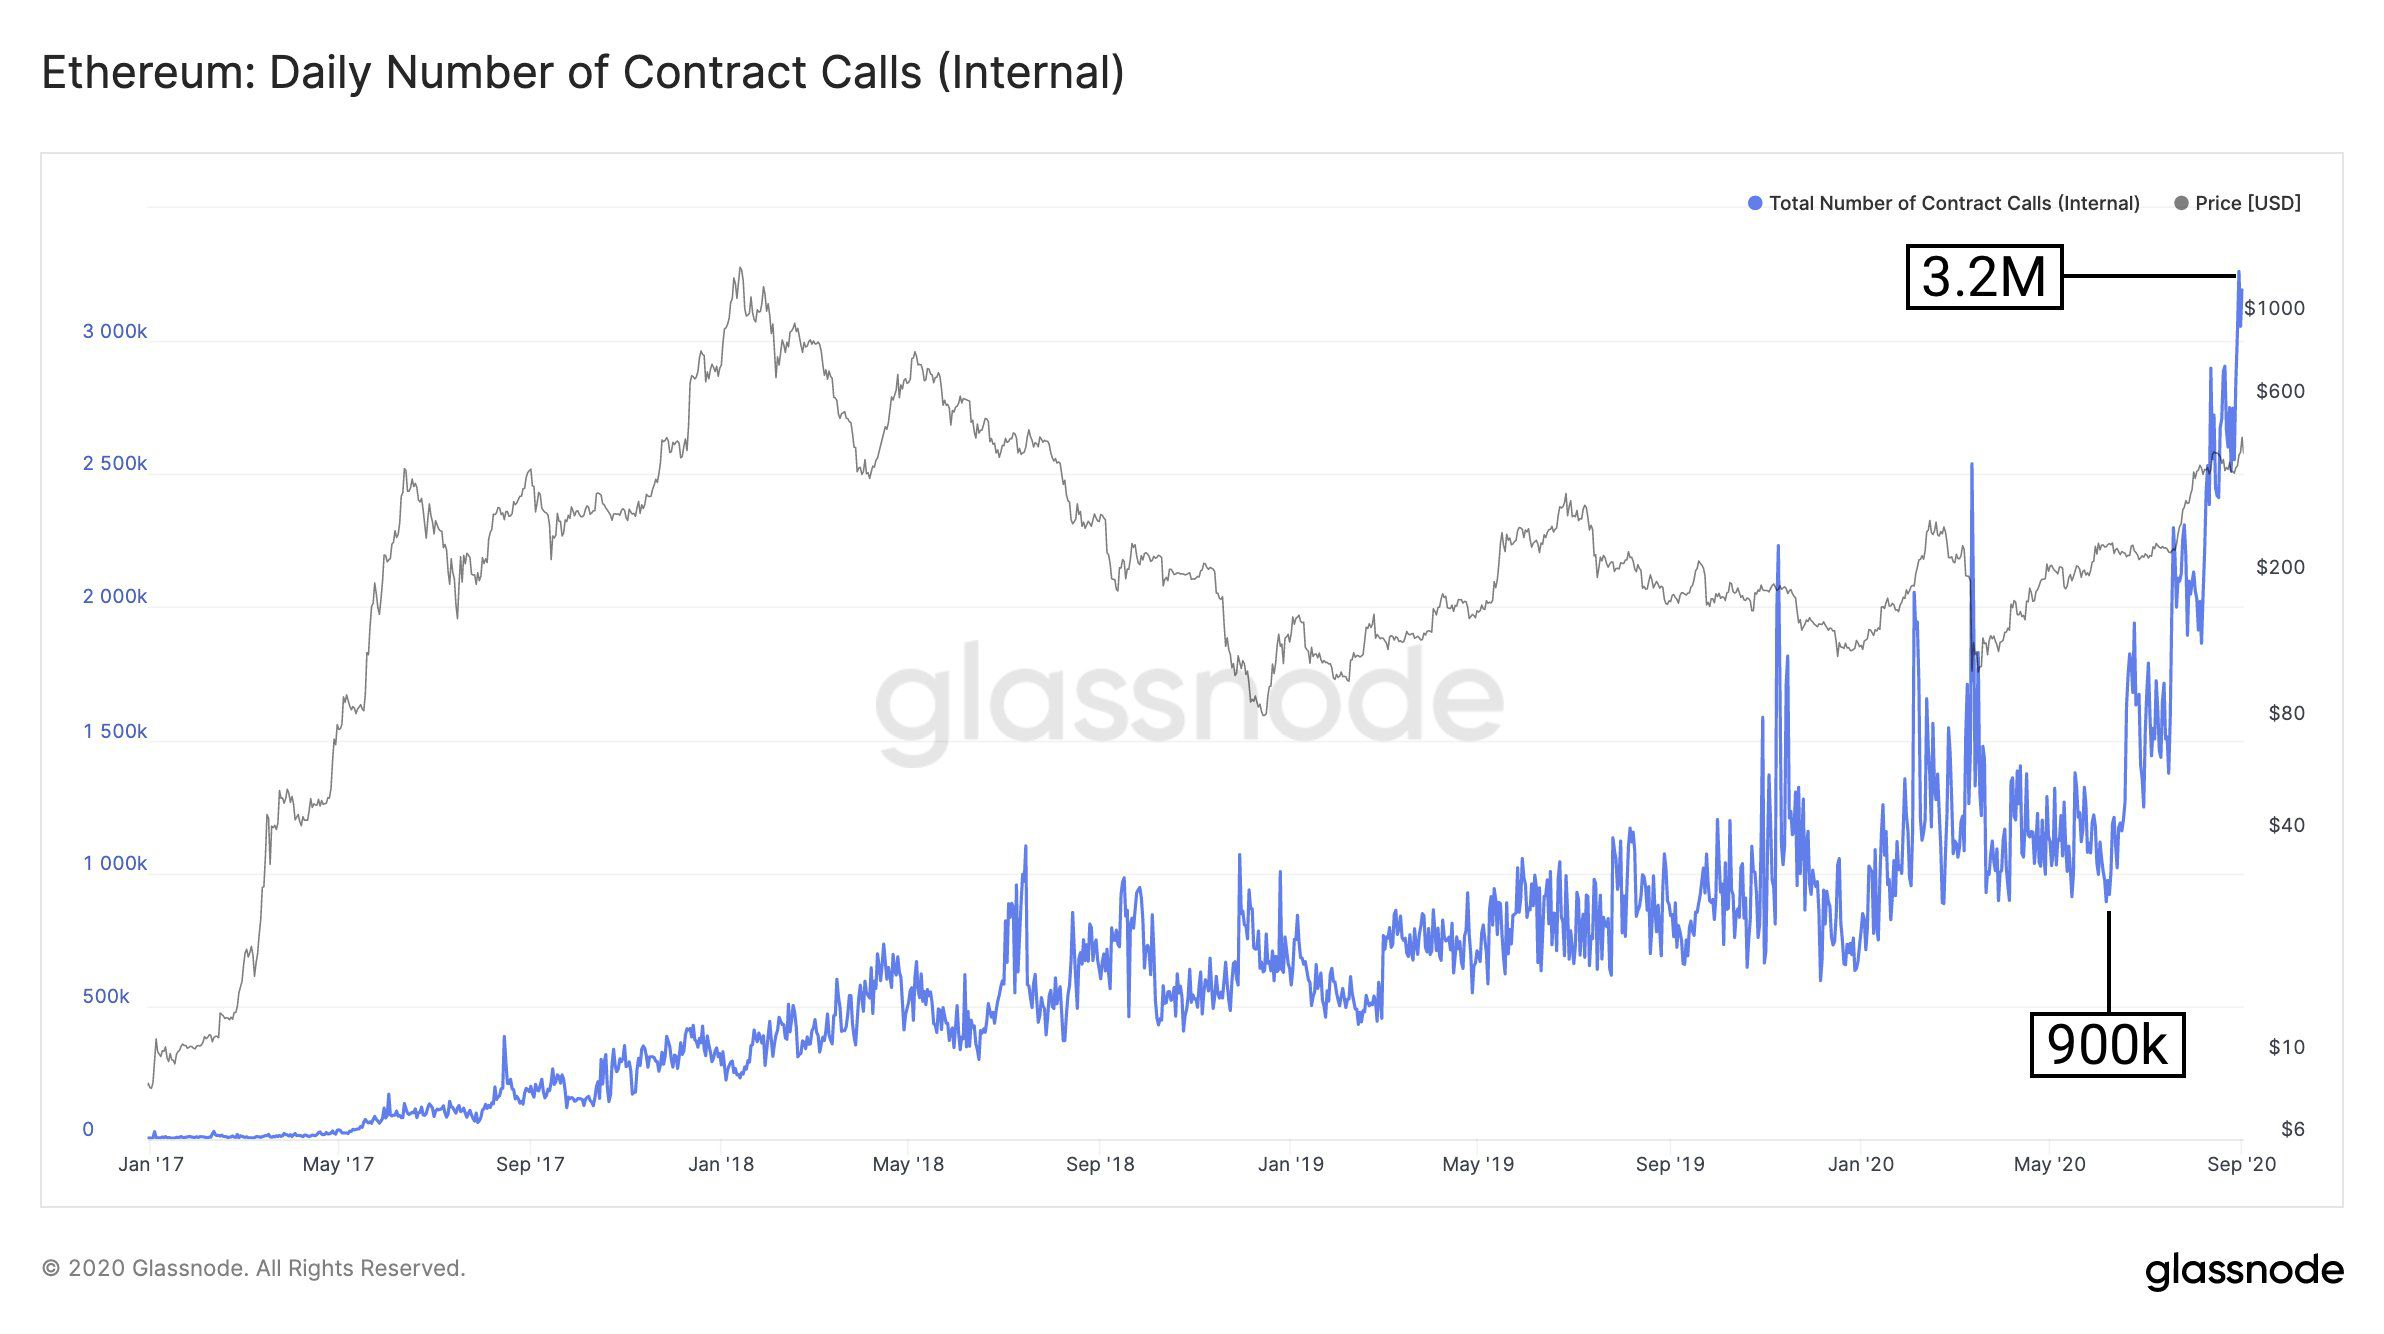 Internal Ethereum Contract Calls on a High